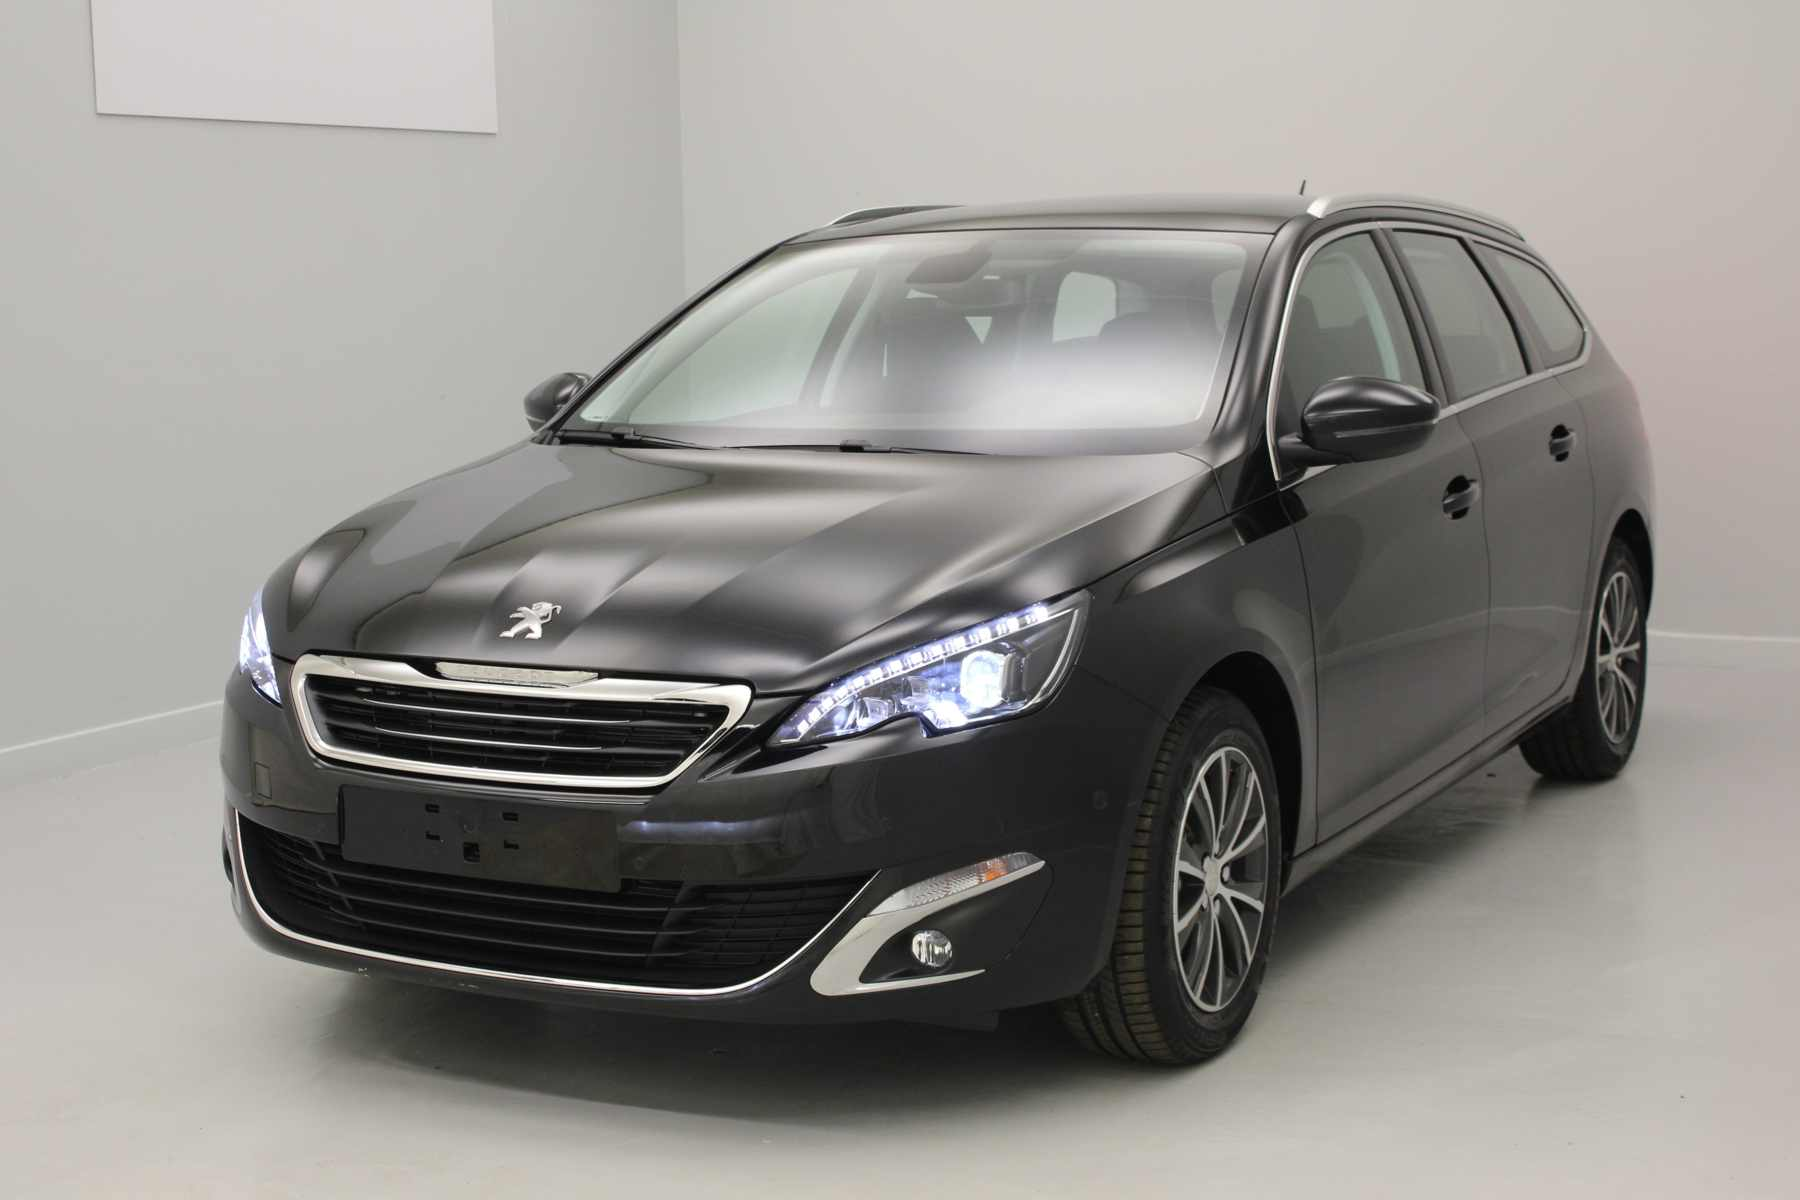 PEUGEOT 308 SW 1.6 BlueHDi 120ch BVM6 Allure Noir Perla + Toit Panoramique + Park Assist avec options